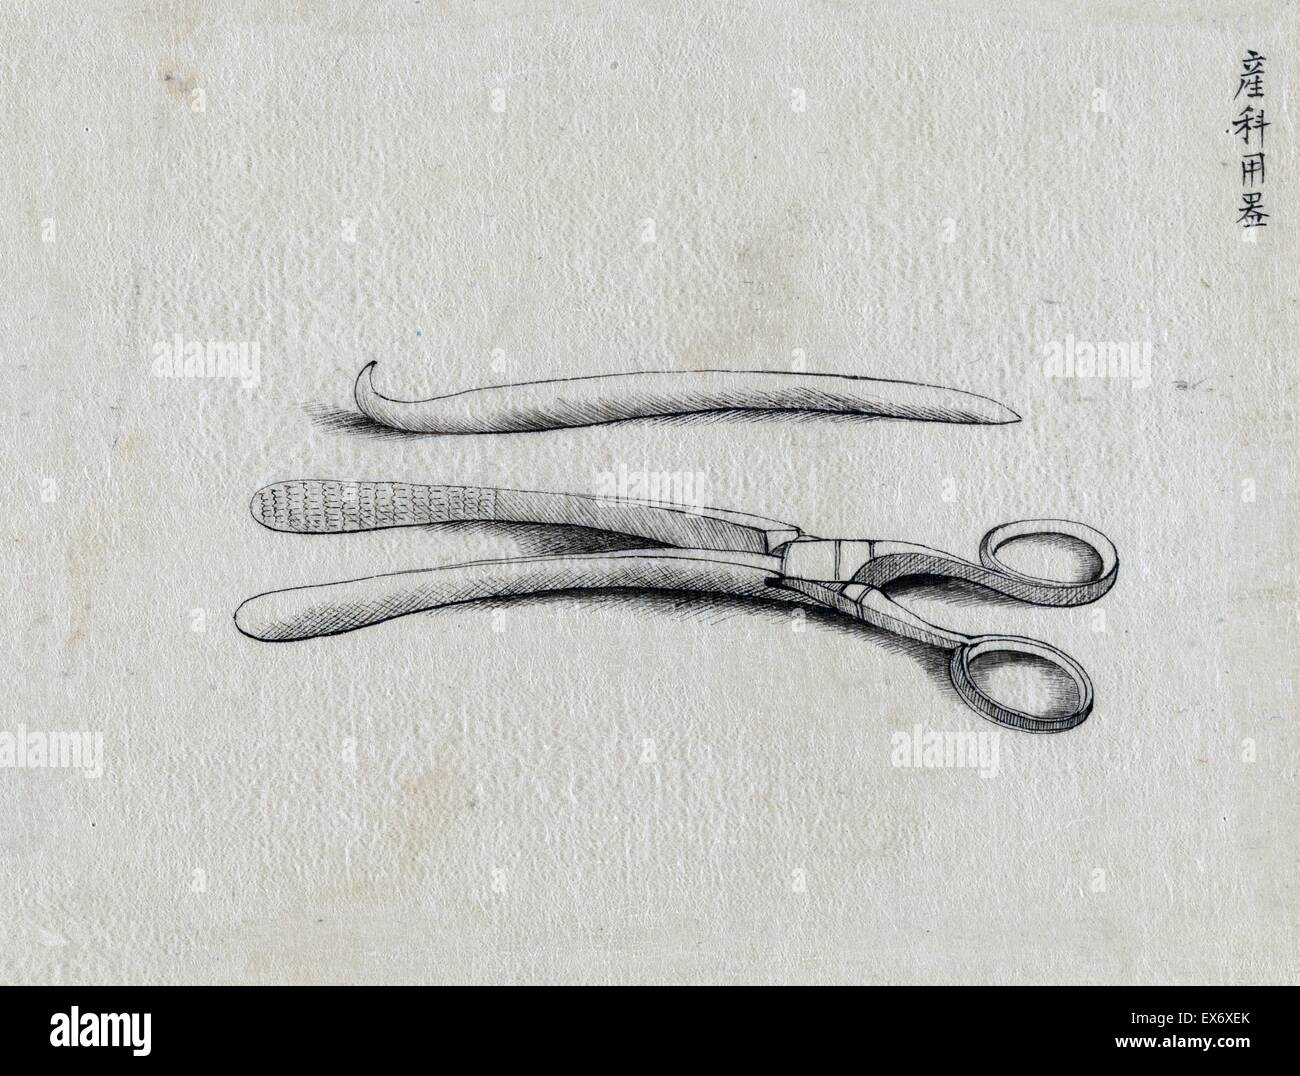 Scissor clamps and hooked probe. Unsigned, possibly by Kano, 1878. From the 'Medicine' series. - Stock Image